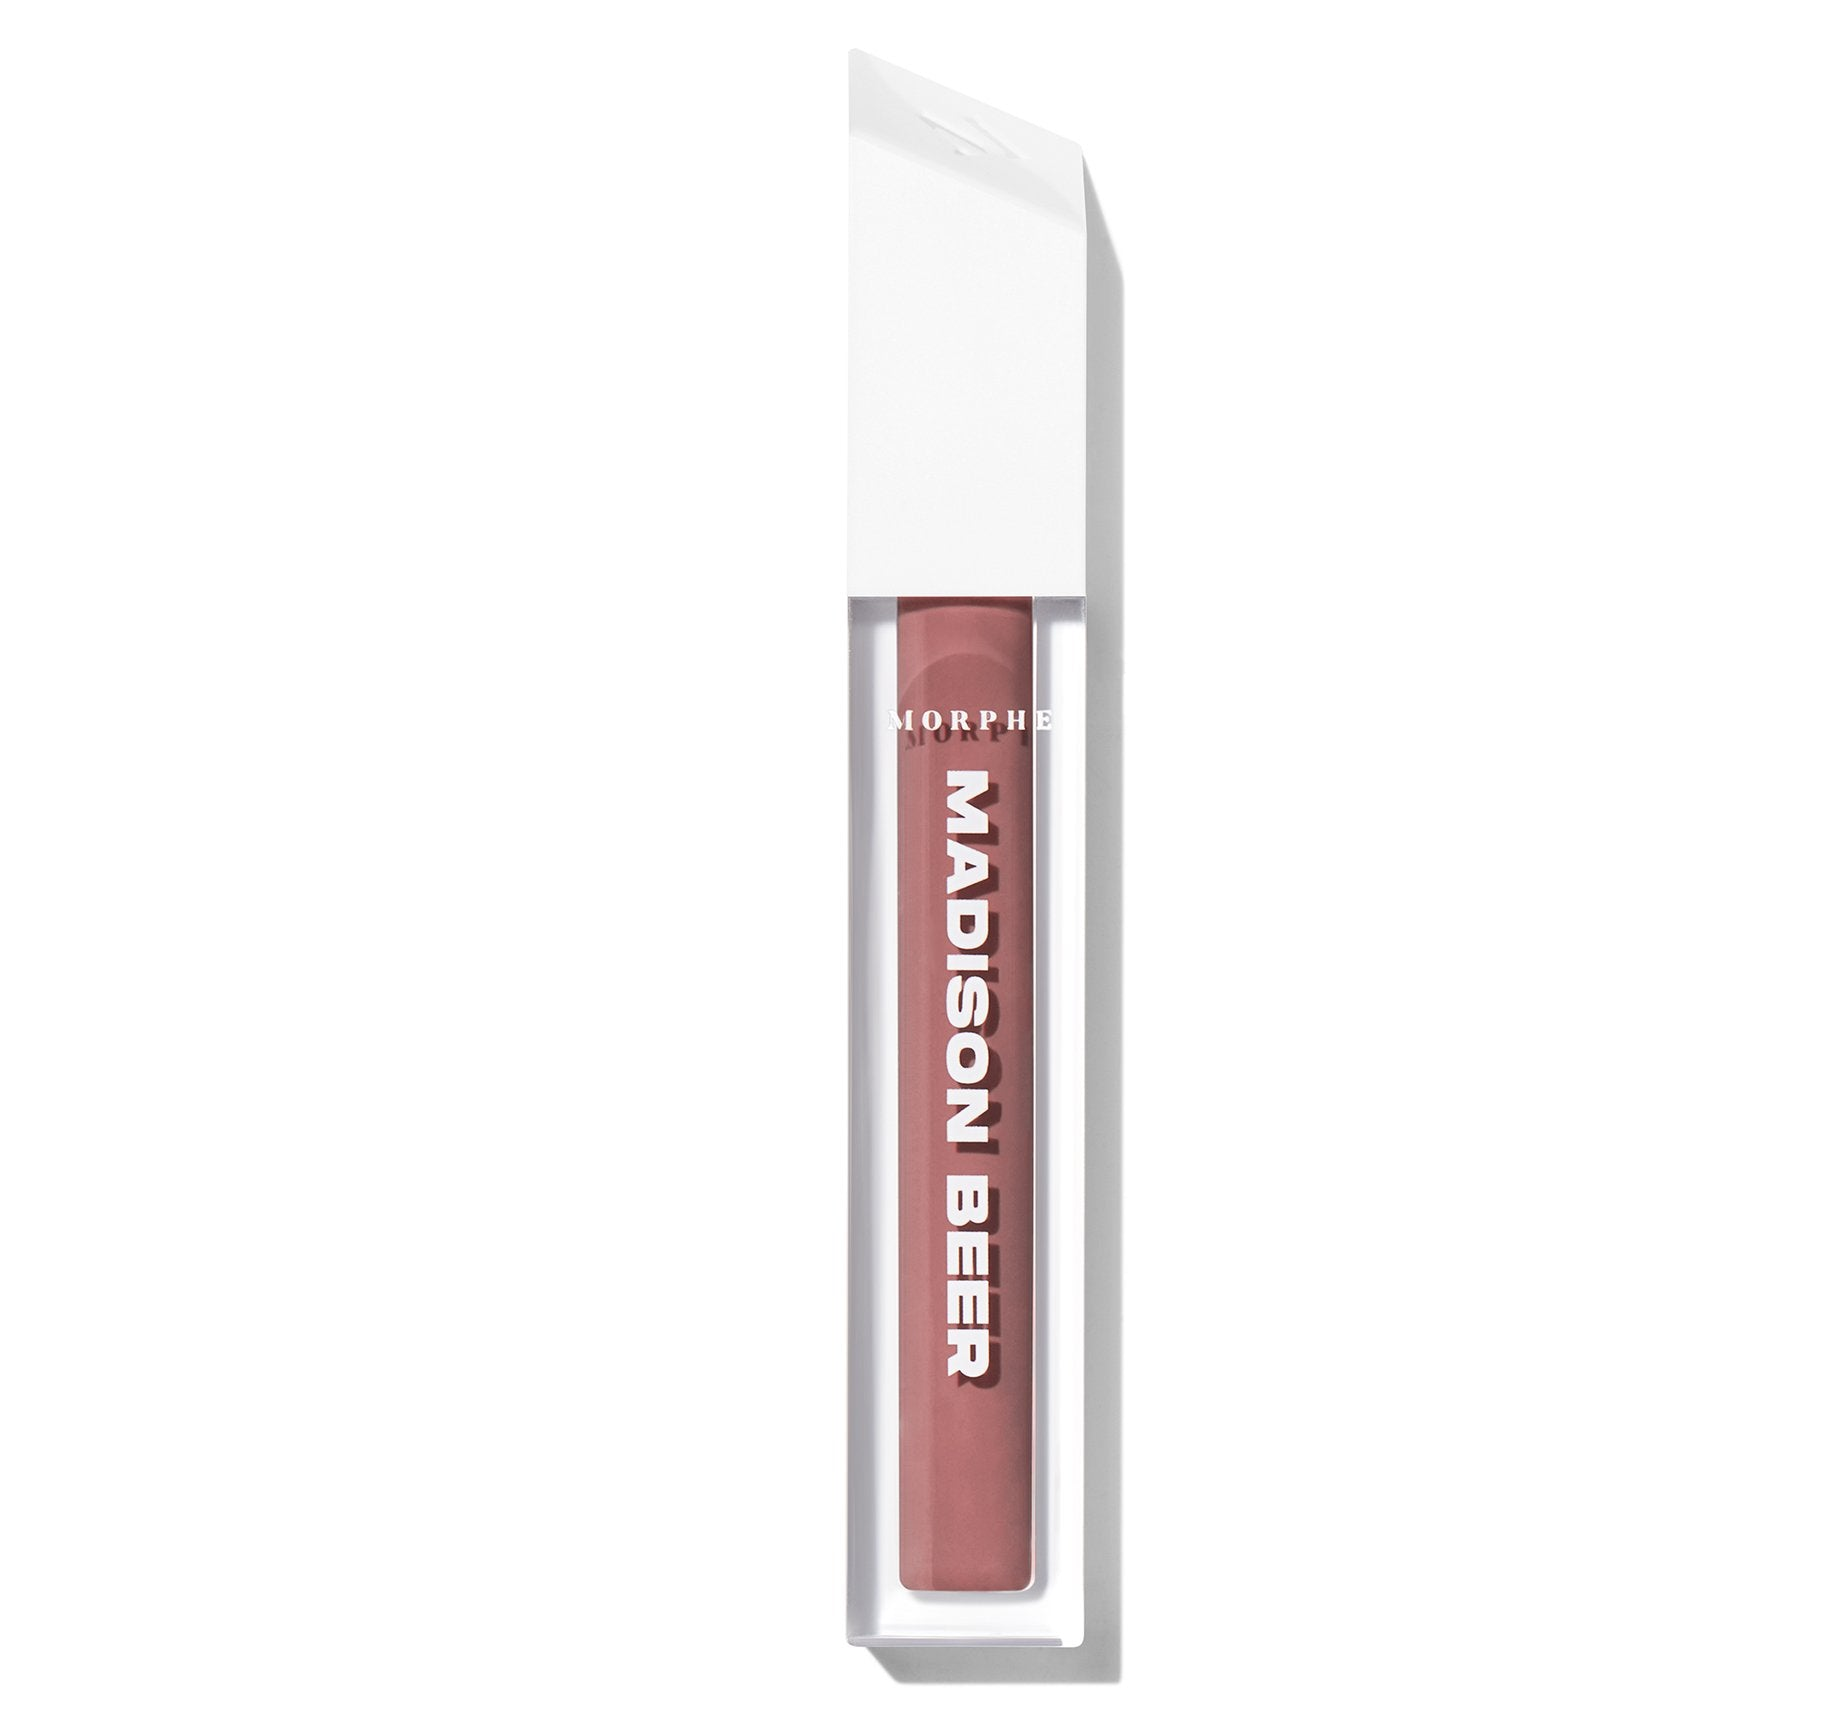 MADISON BEER LIP GLOSS - VENUS, view larger image